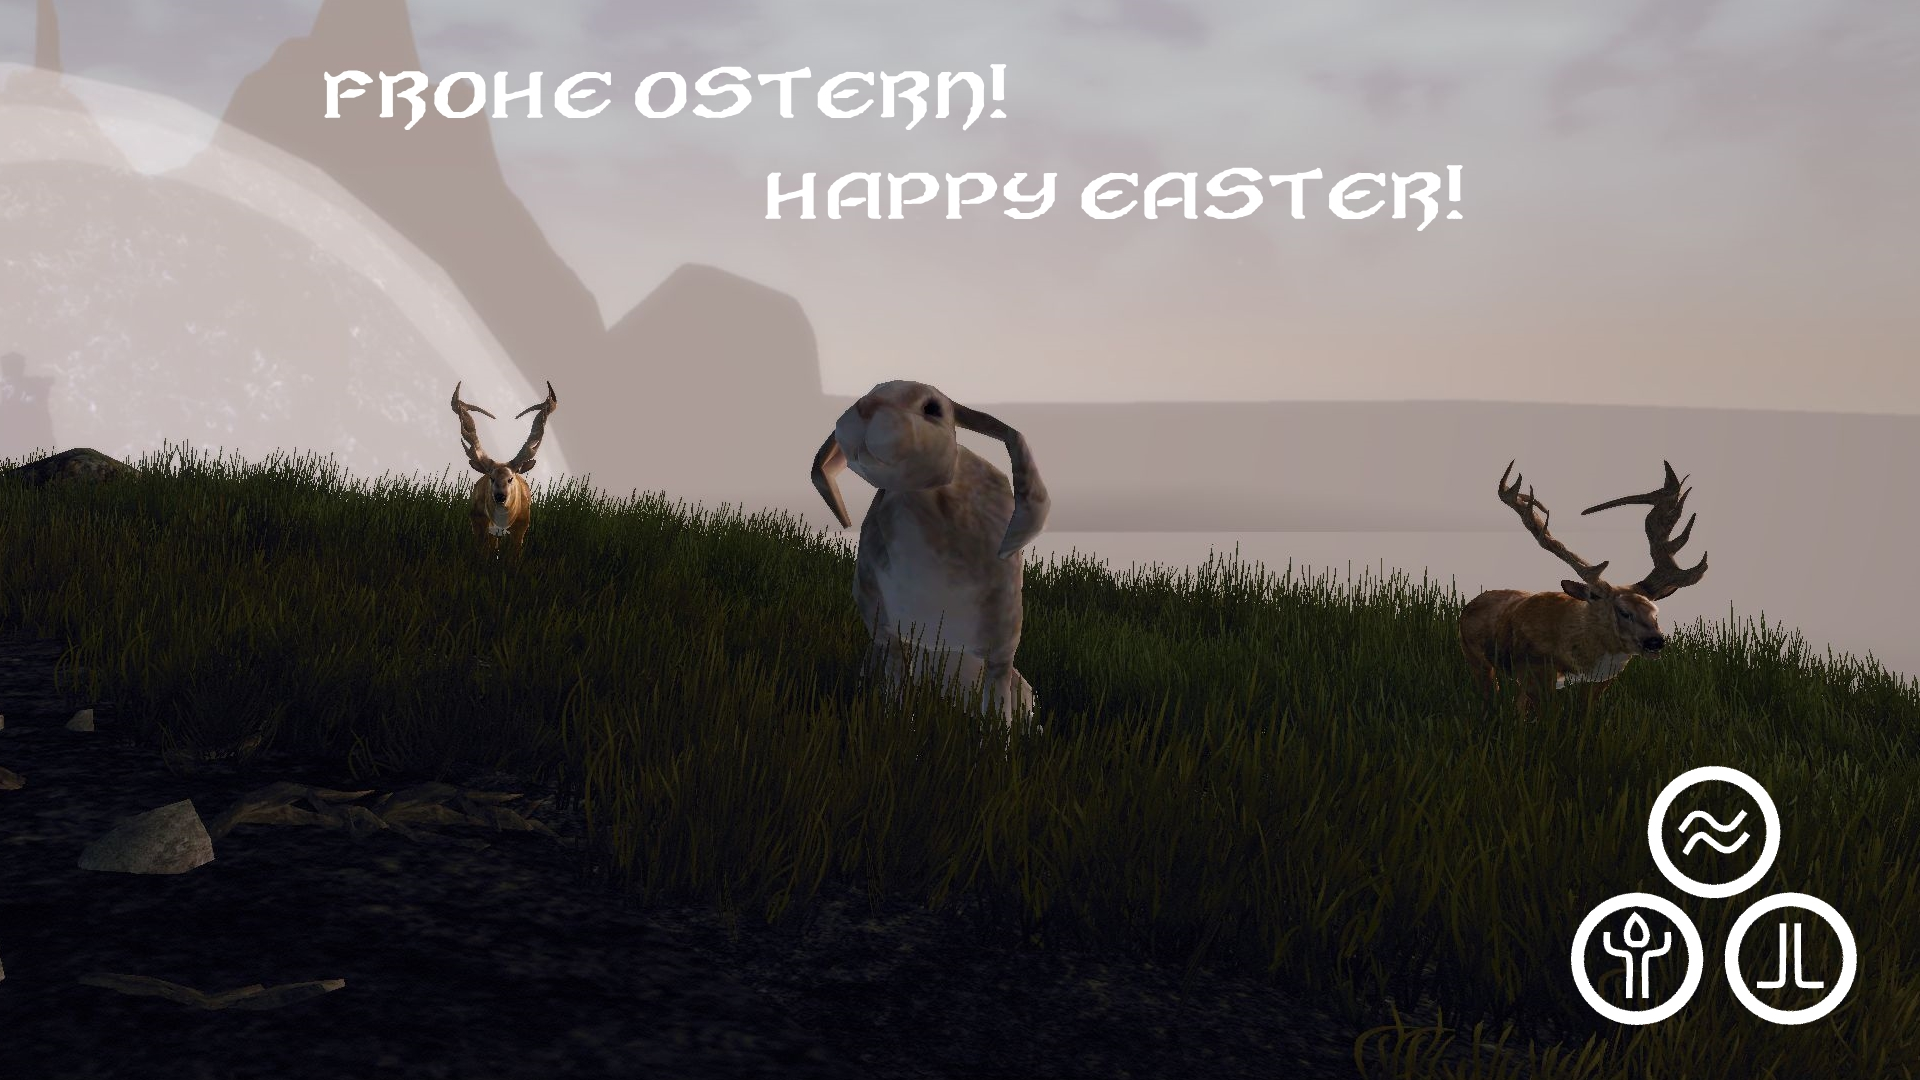 Frohe_Ostern_2015